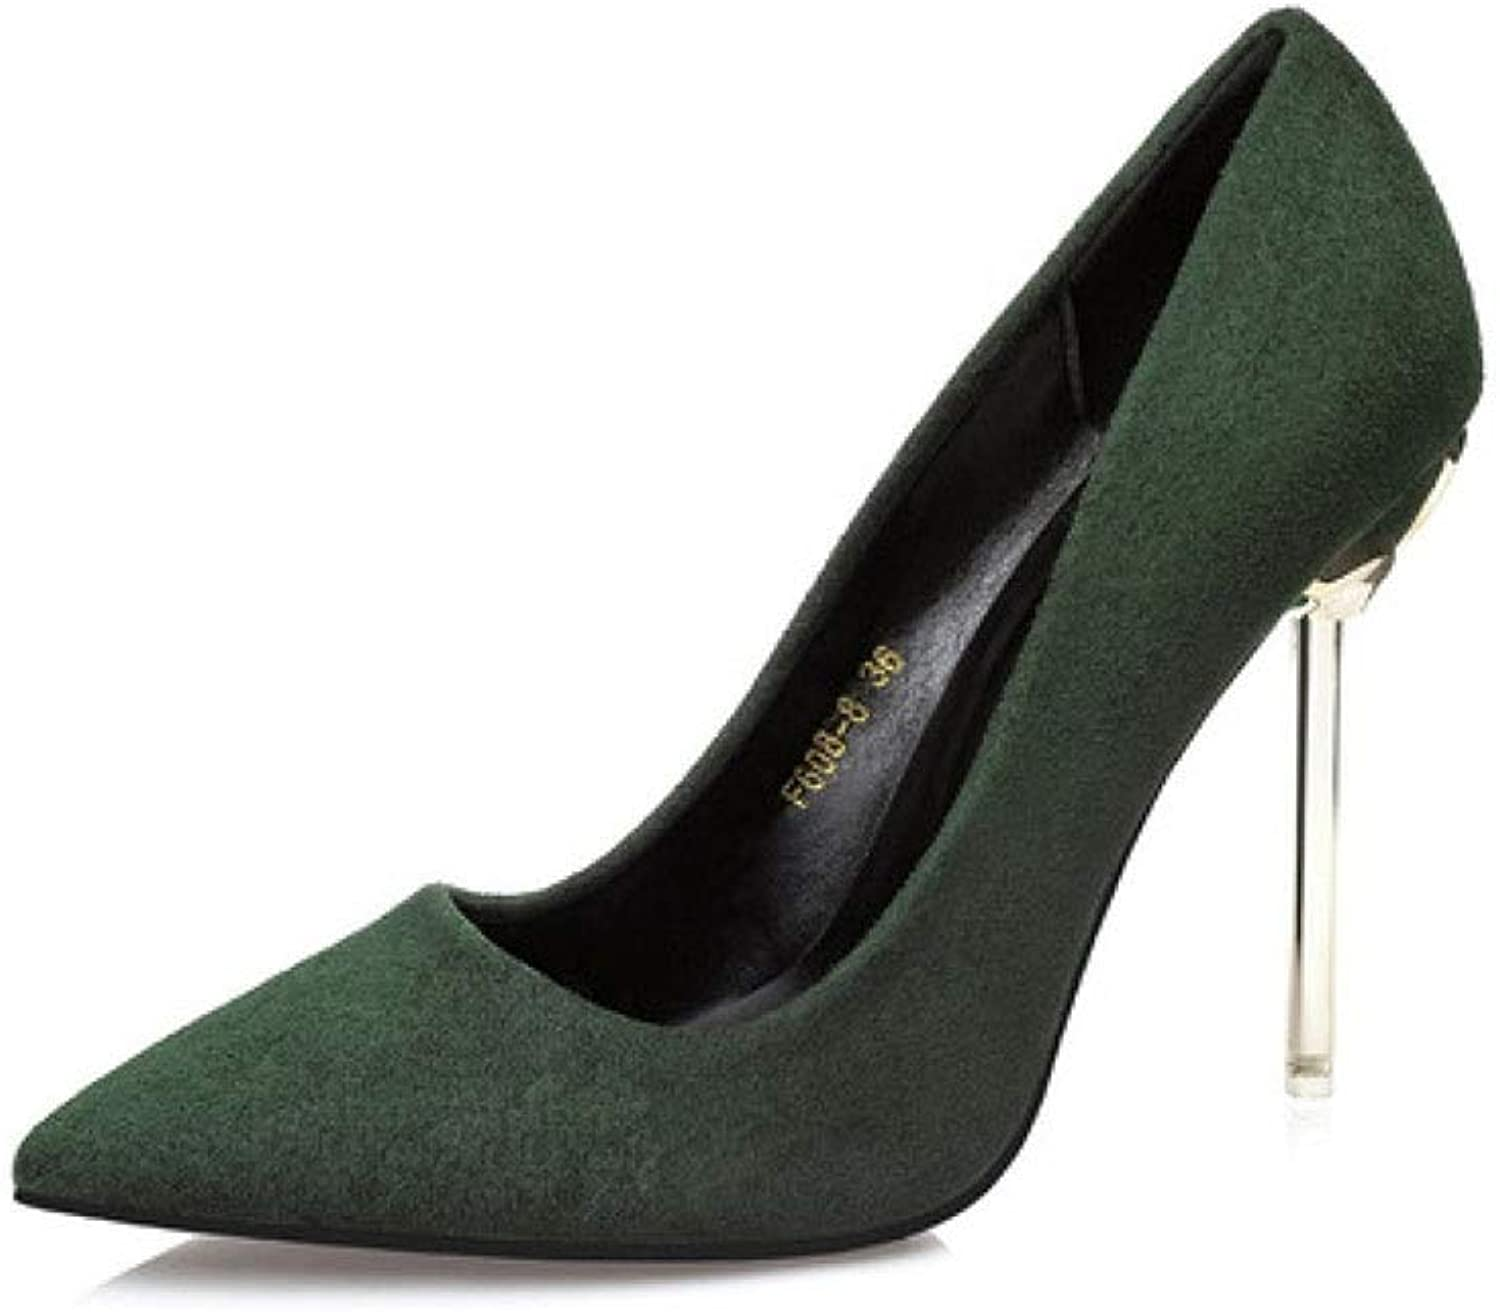 CBDGD High-Heeled shoes Women's Simple Fashion Elegant High Heels Single shoes High Heels Spring and Summer 10CM 4 colors High Heels (color   Green, Size   EU35 UK3 CN34)